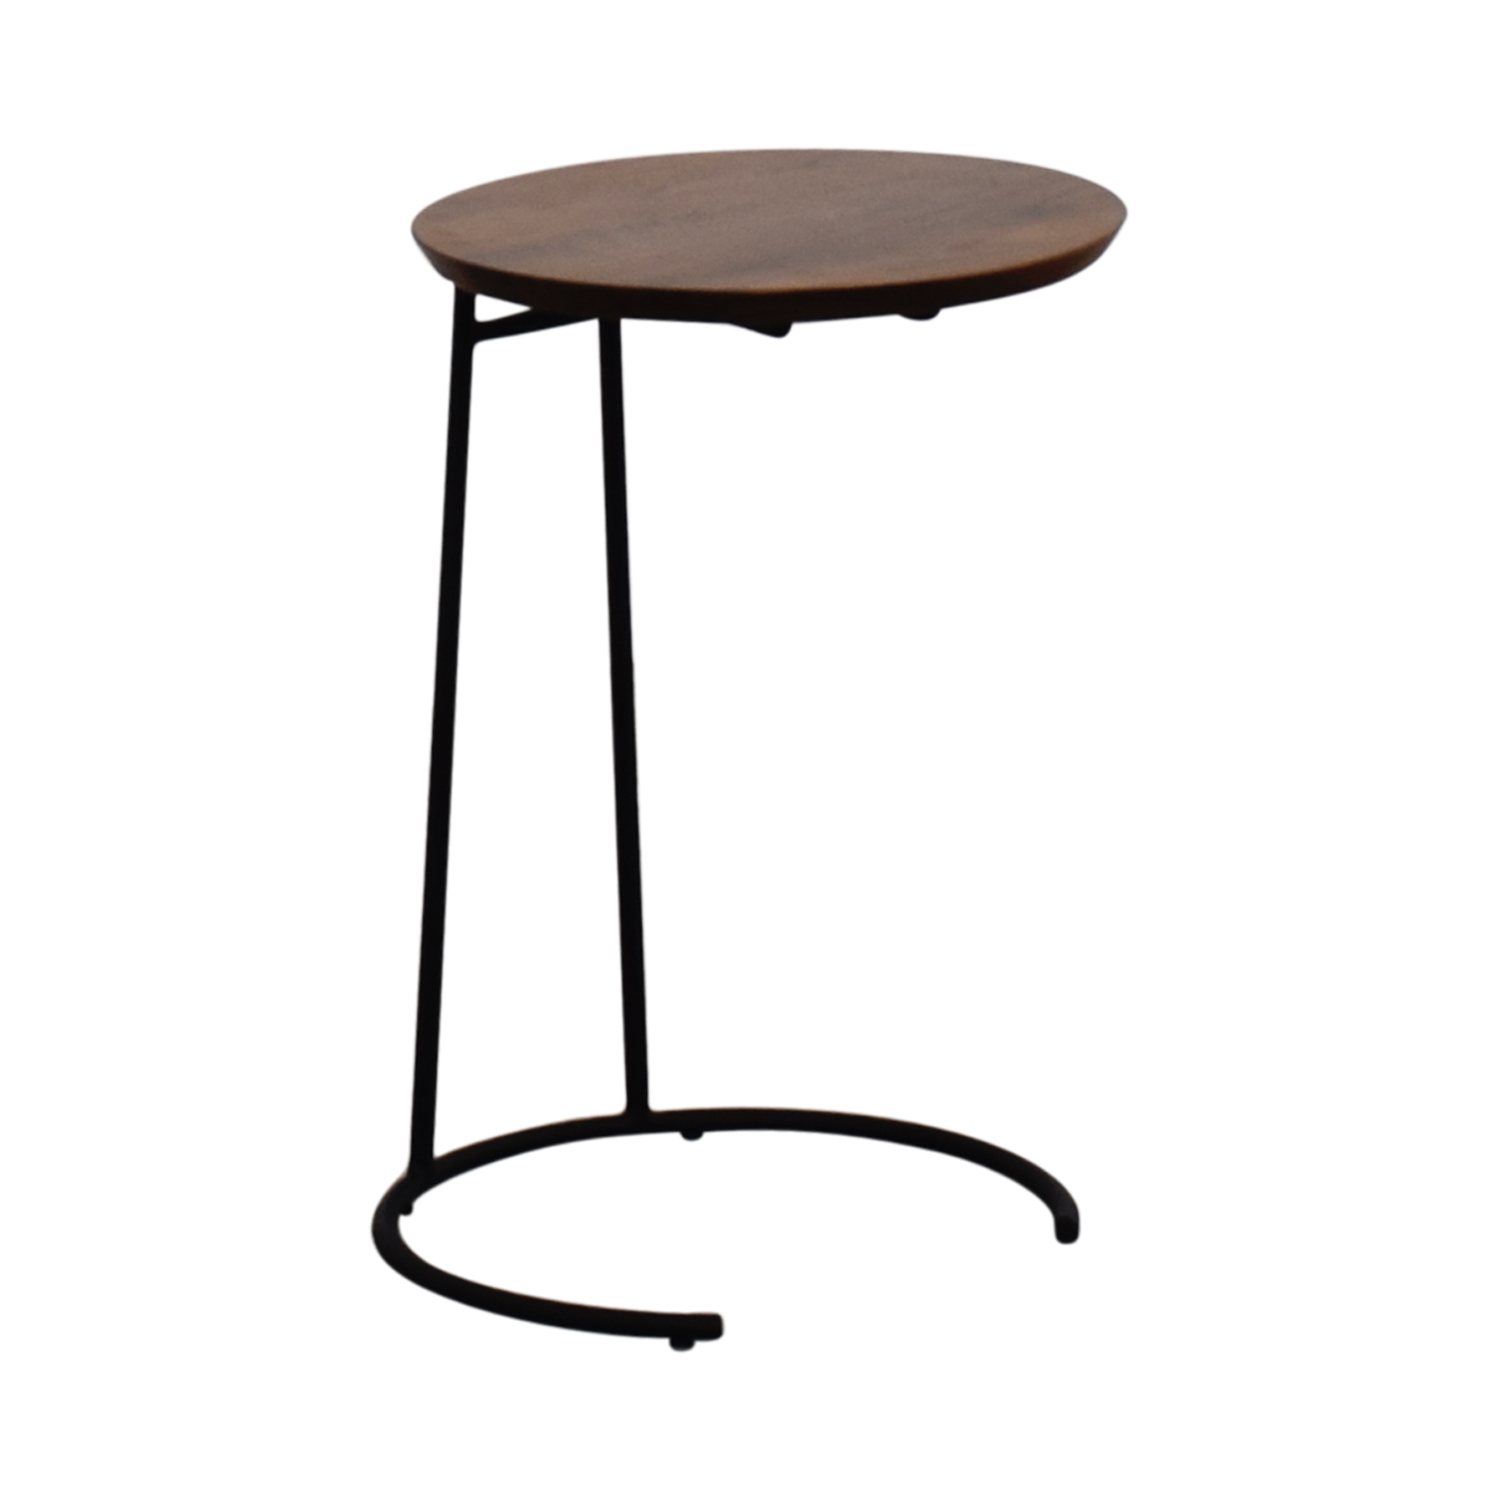 ... Design Within Reach Design Within Reach Round Side Table Tables ...